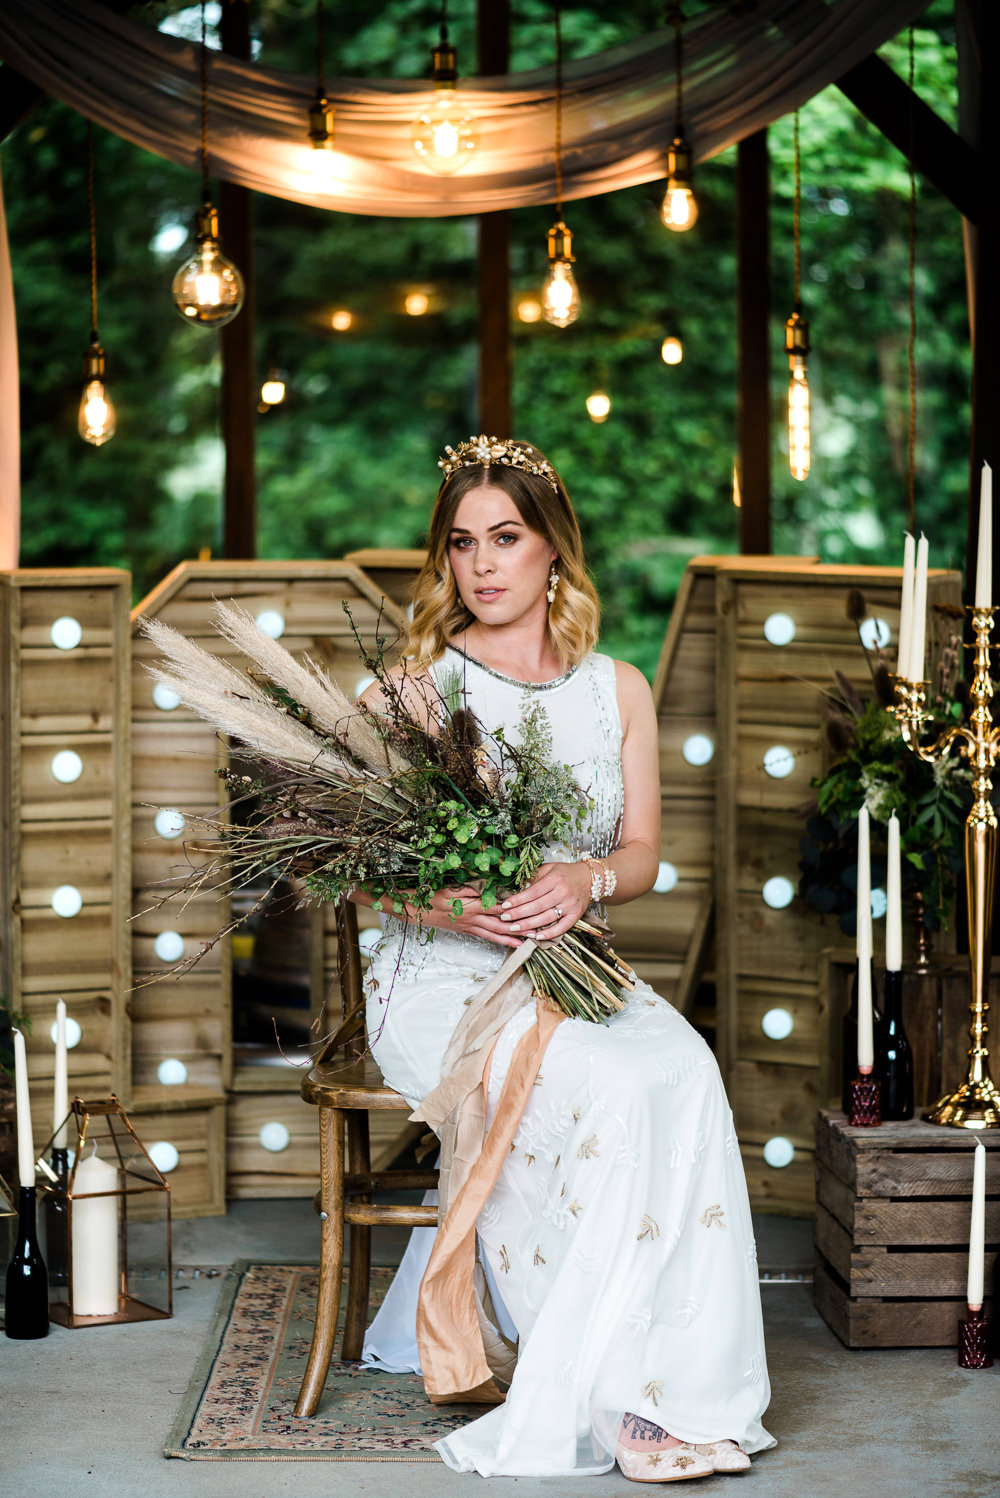 Dress Gown Bride Bridal Sheath Embellished Indie Wedding Ideas Kat Antos-Lewis Photography